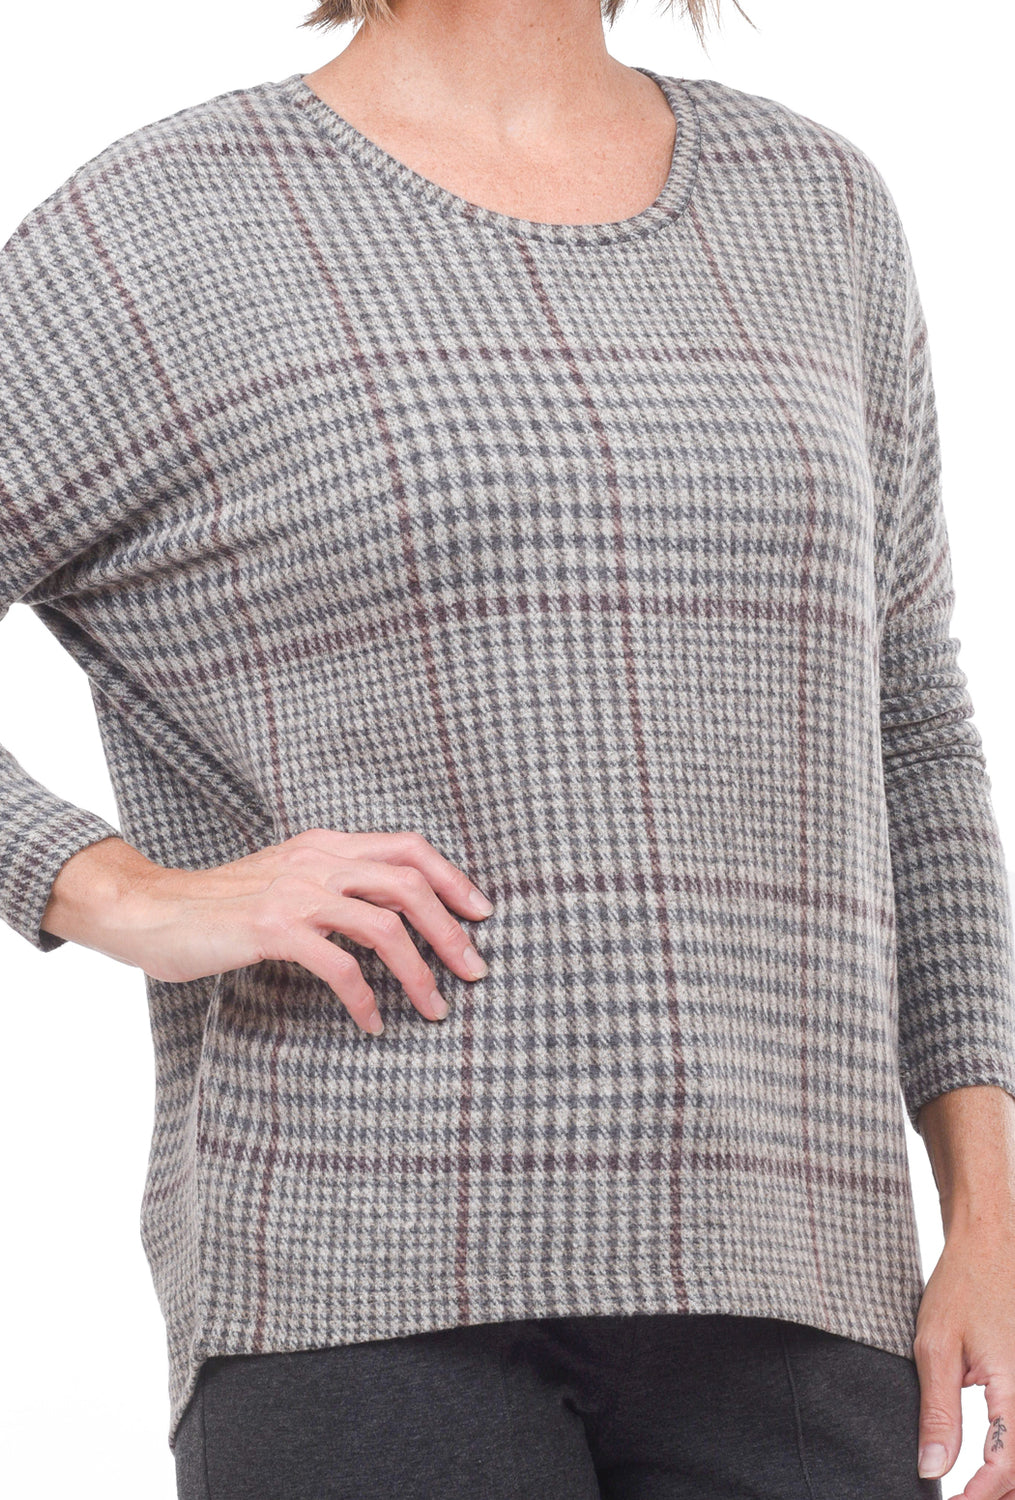 Soya Concept Brushed Plaid Top, Gray/Maroon Combo